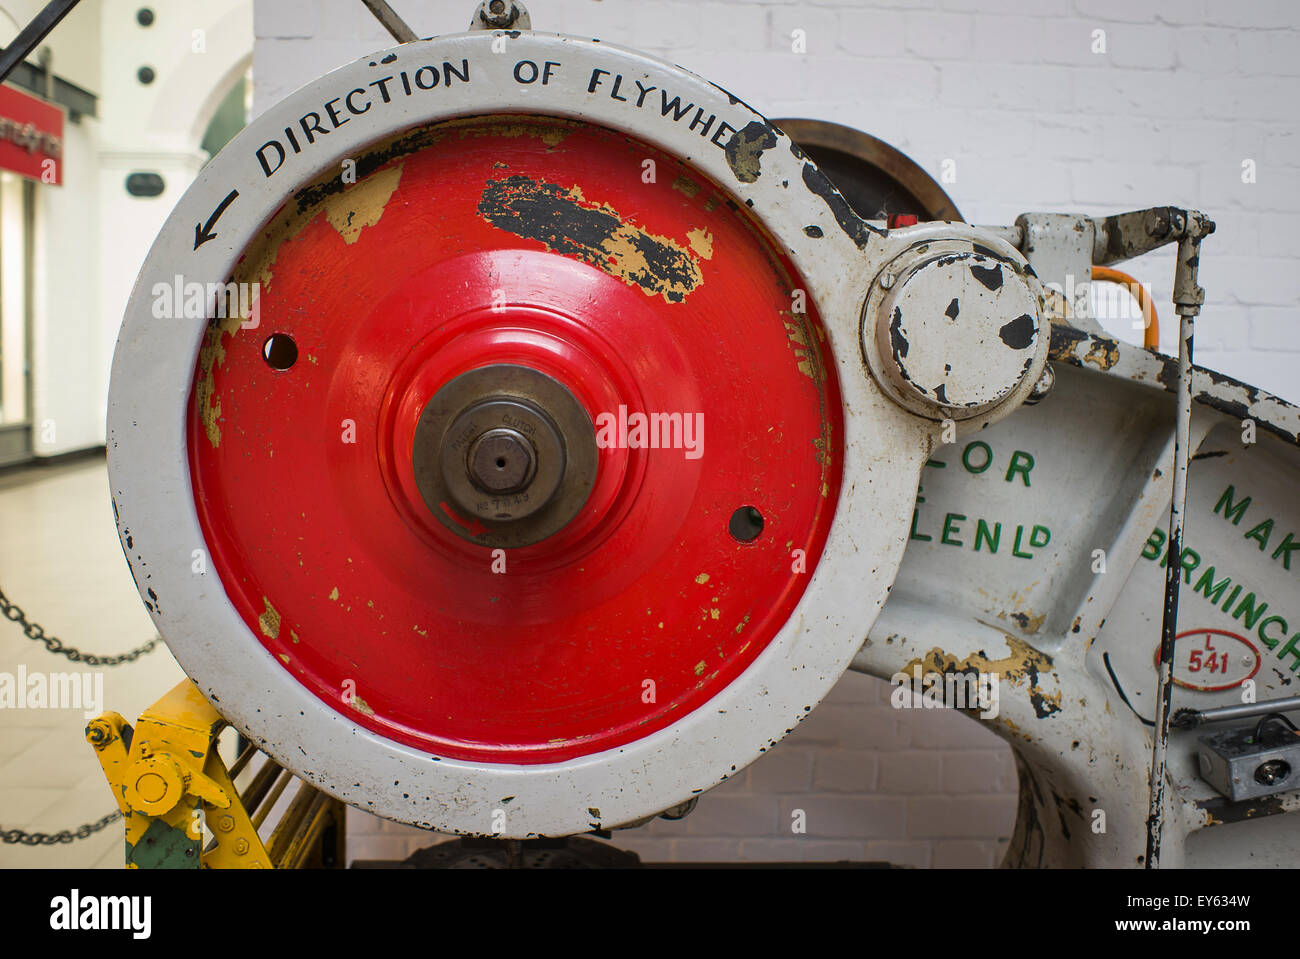 Heavy metal flywheel on old industrial machine exhibited in shopping mall in UK - Stock Image